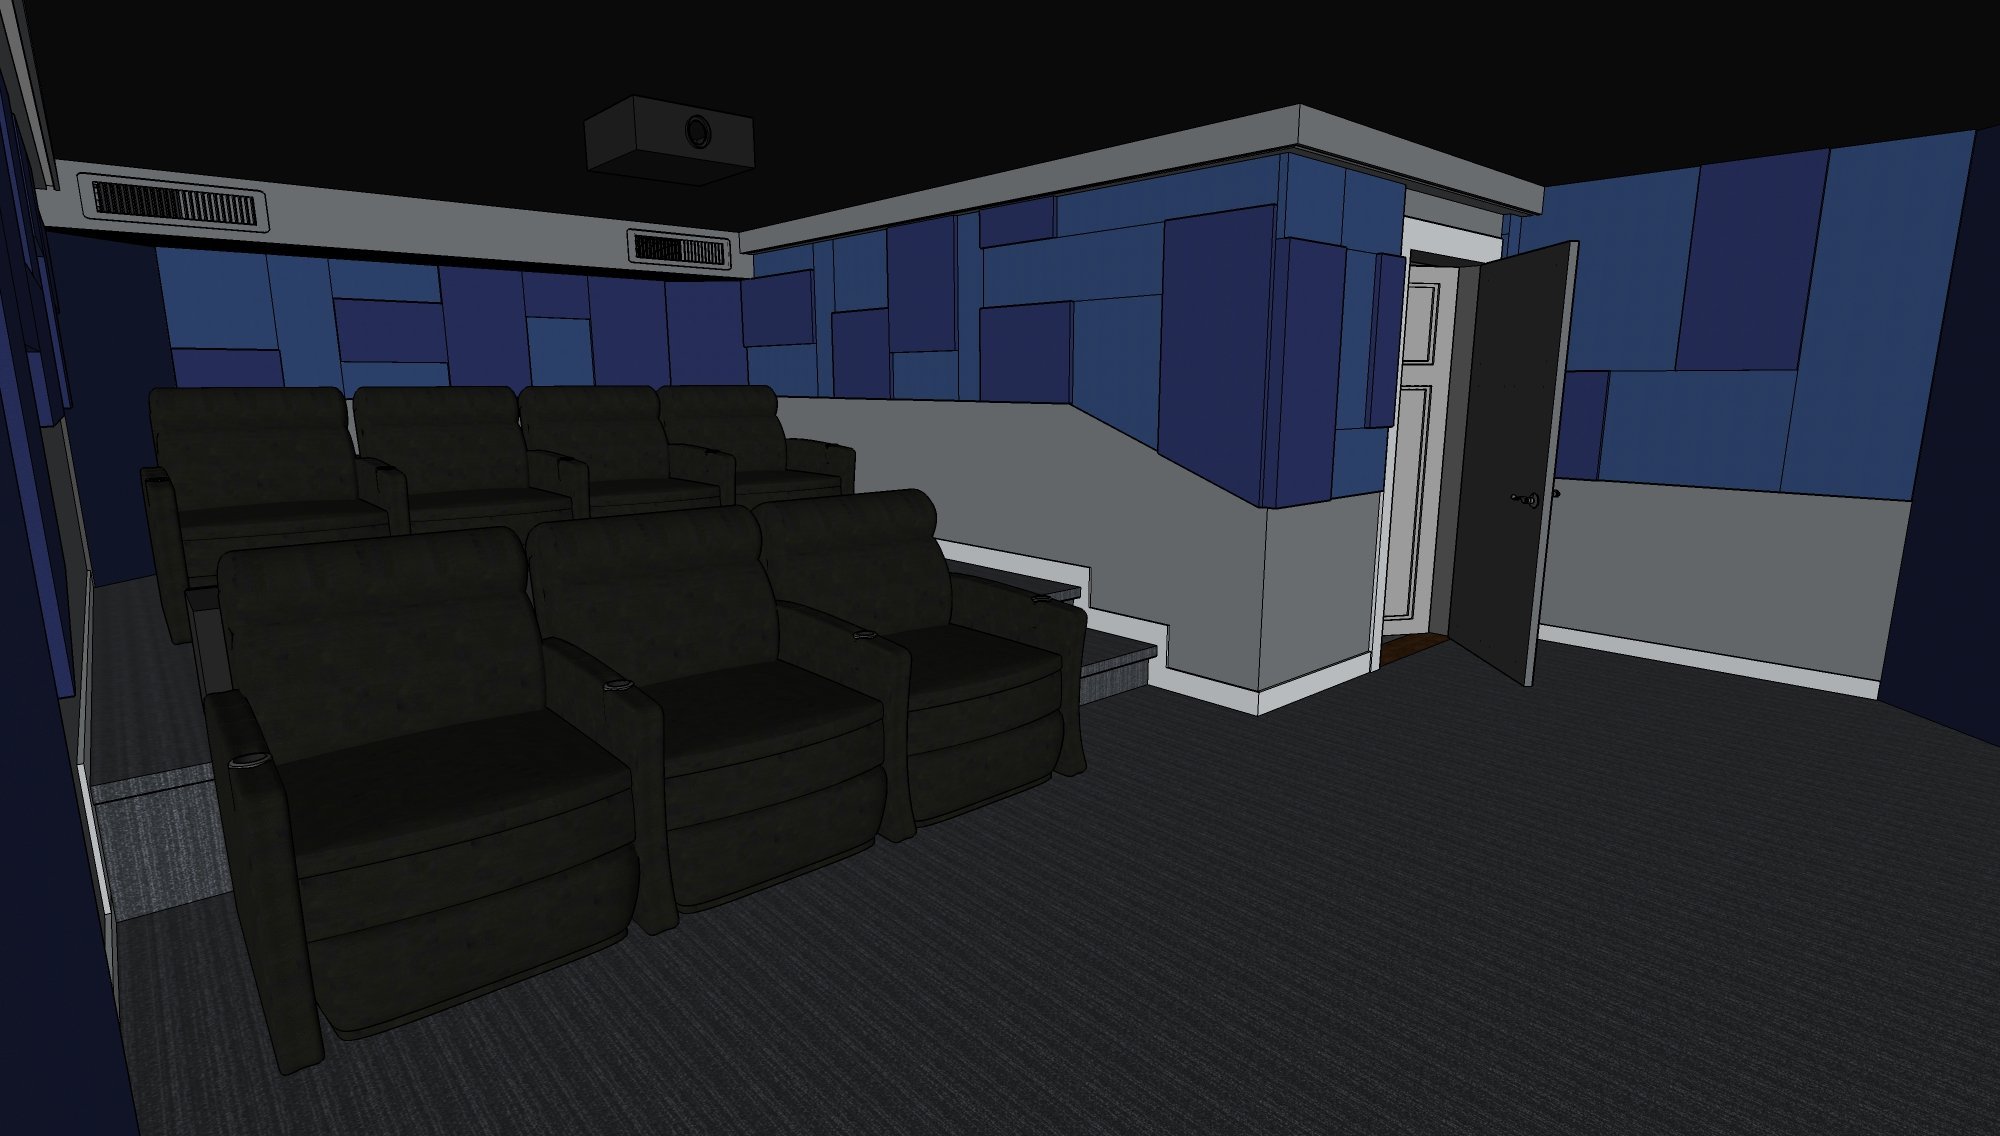 Click image for larger version  Name:Blue Room Theater Door.jpg Views:63 Size:904.5 KB ID:2567442